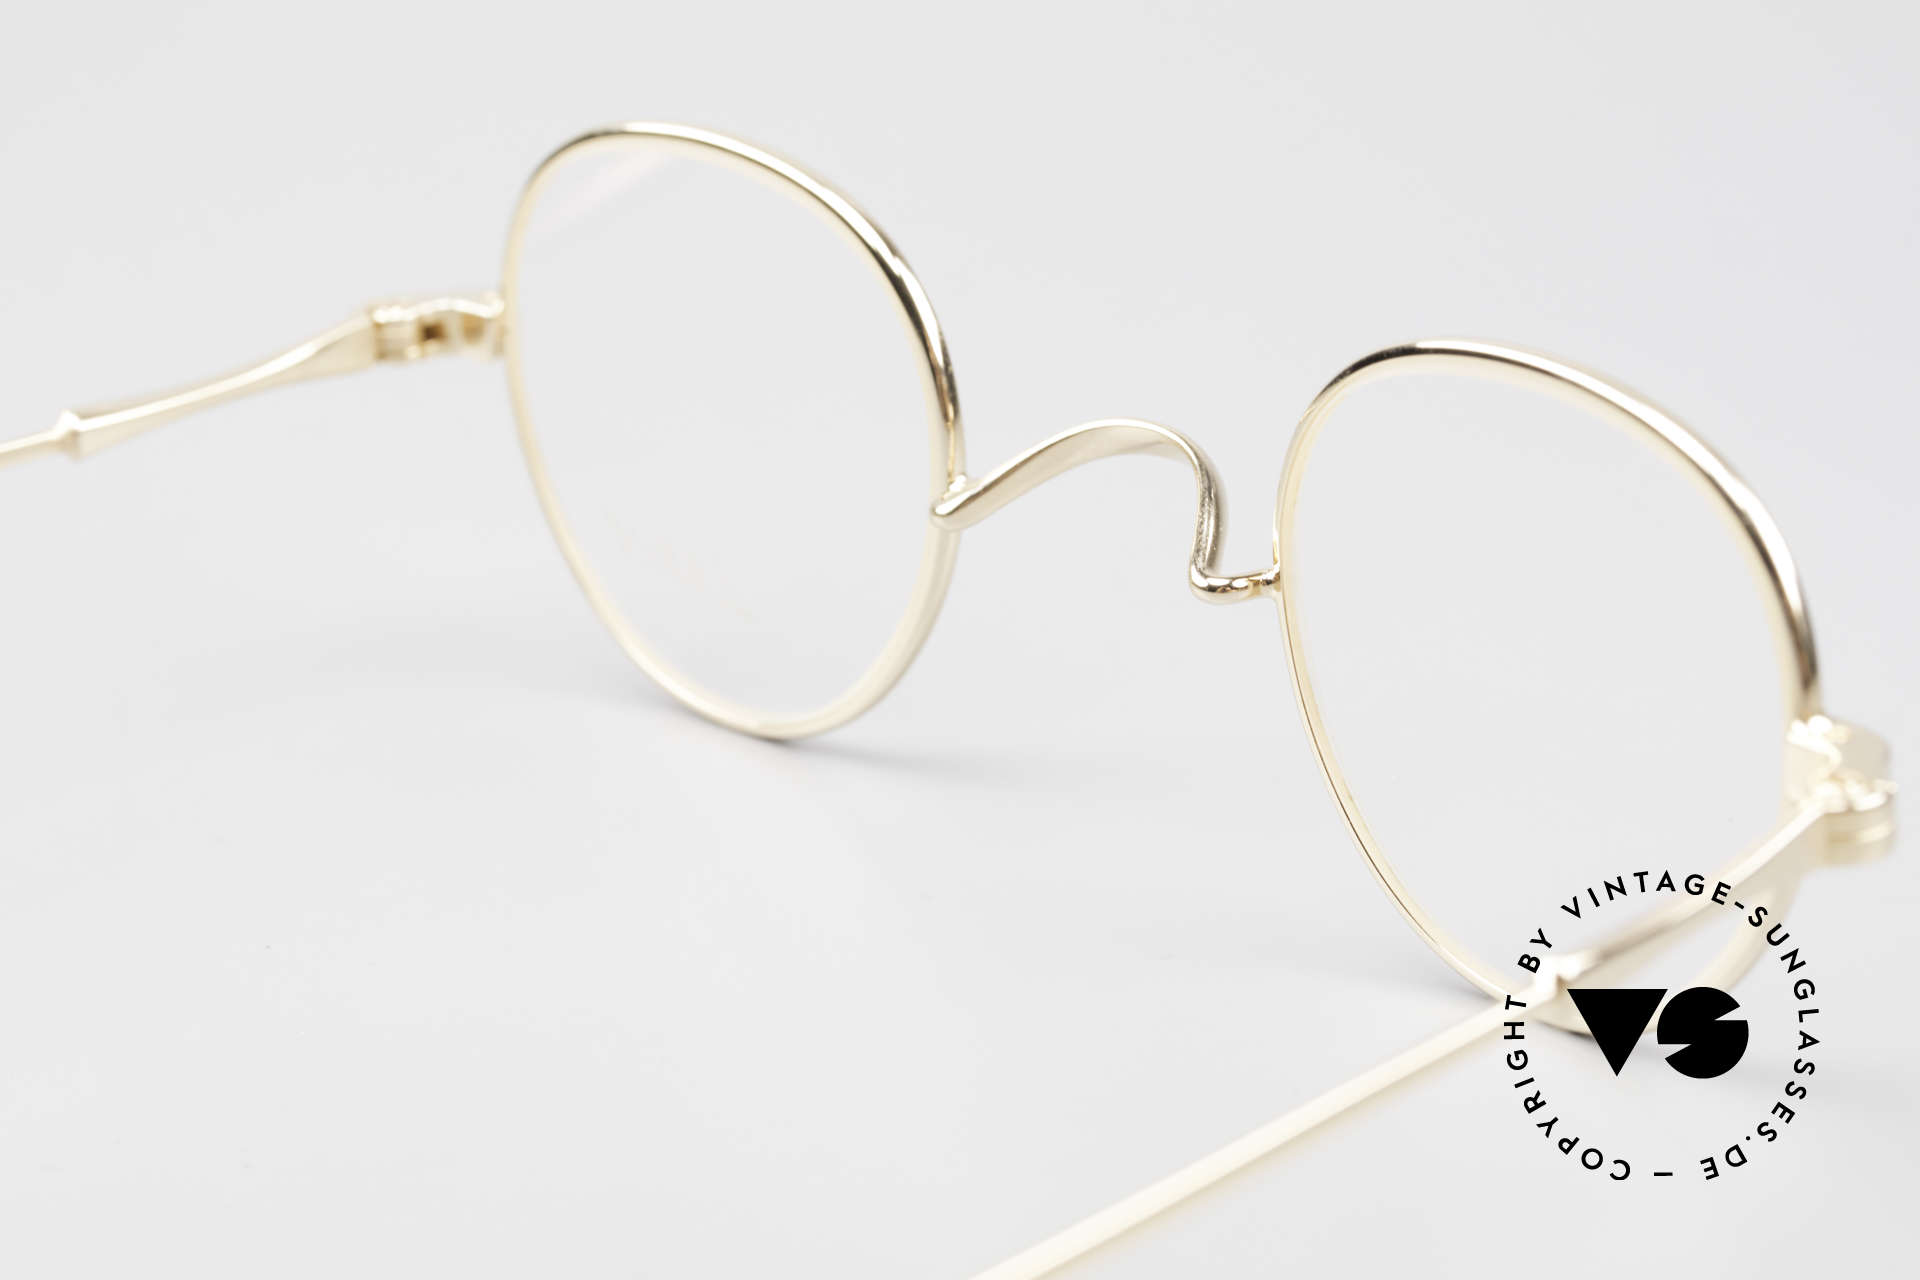 Lunor II 15 Old Panto Frame Gold Plated, Size: small, Made for Men and Women